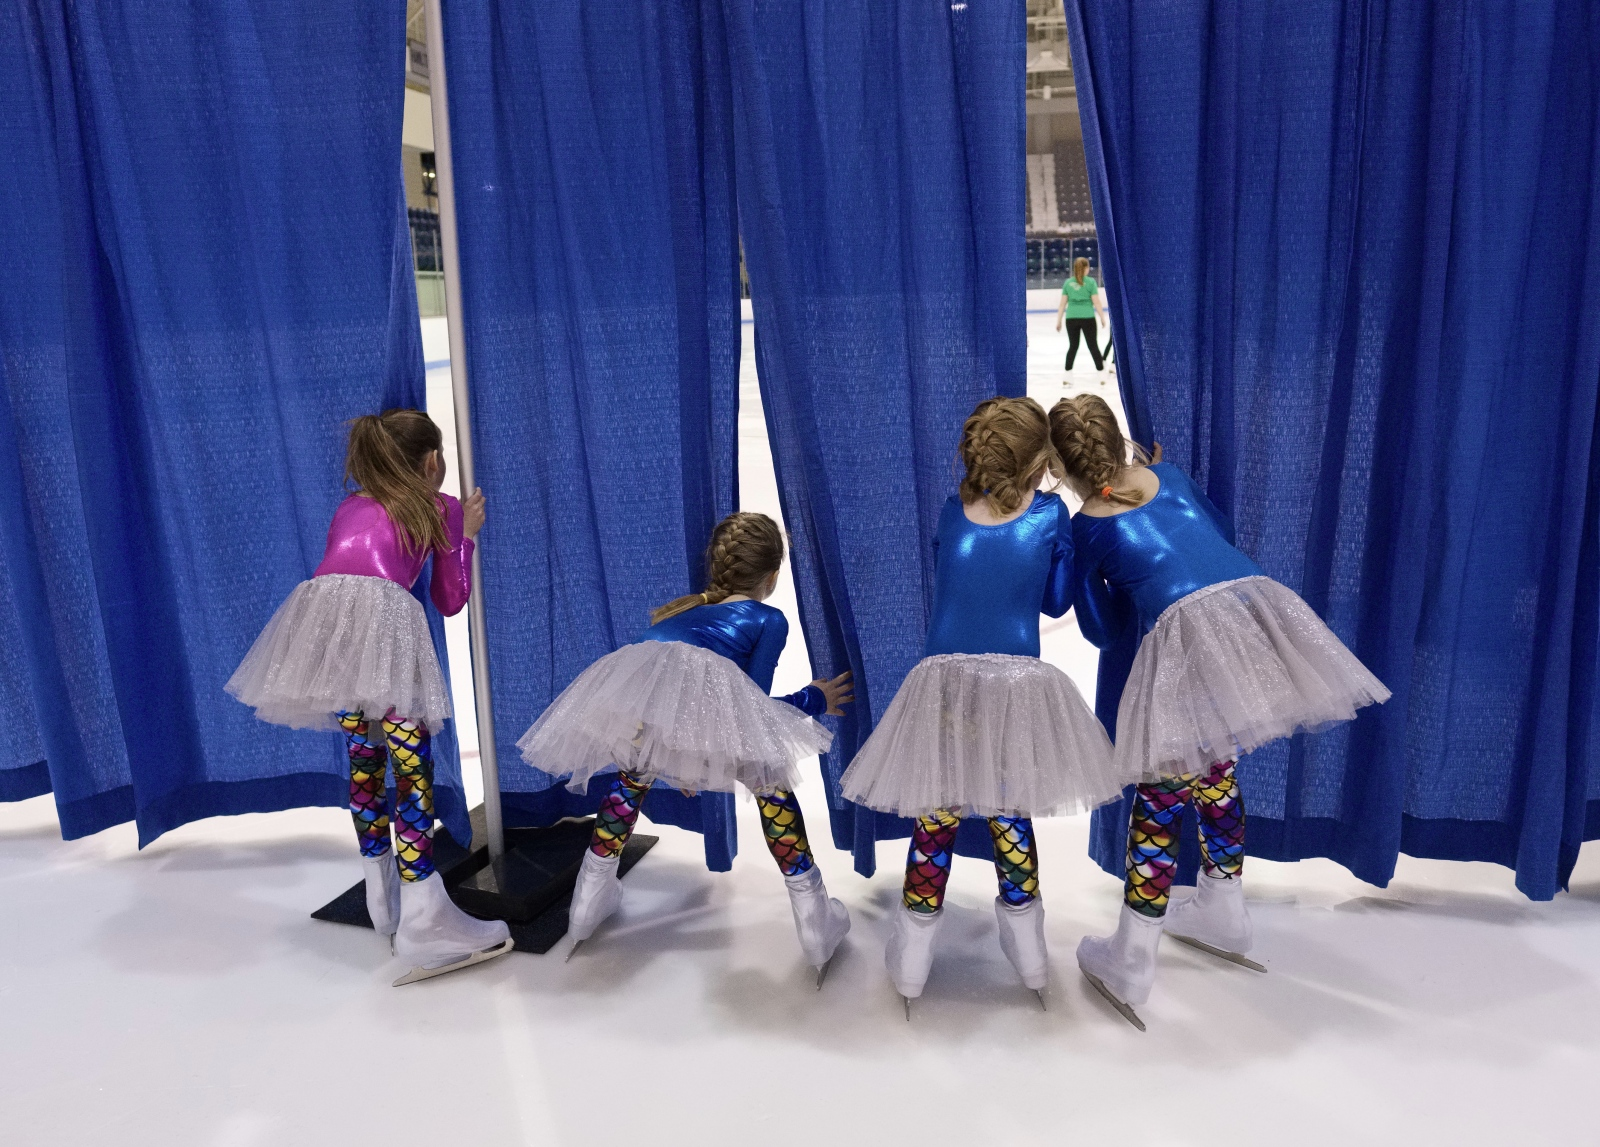 Young figure skaters sneak a peek at more...